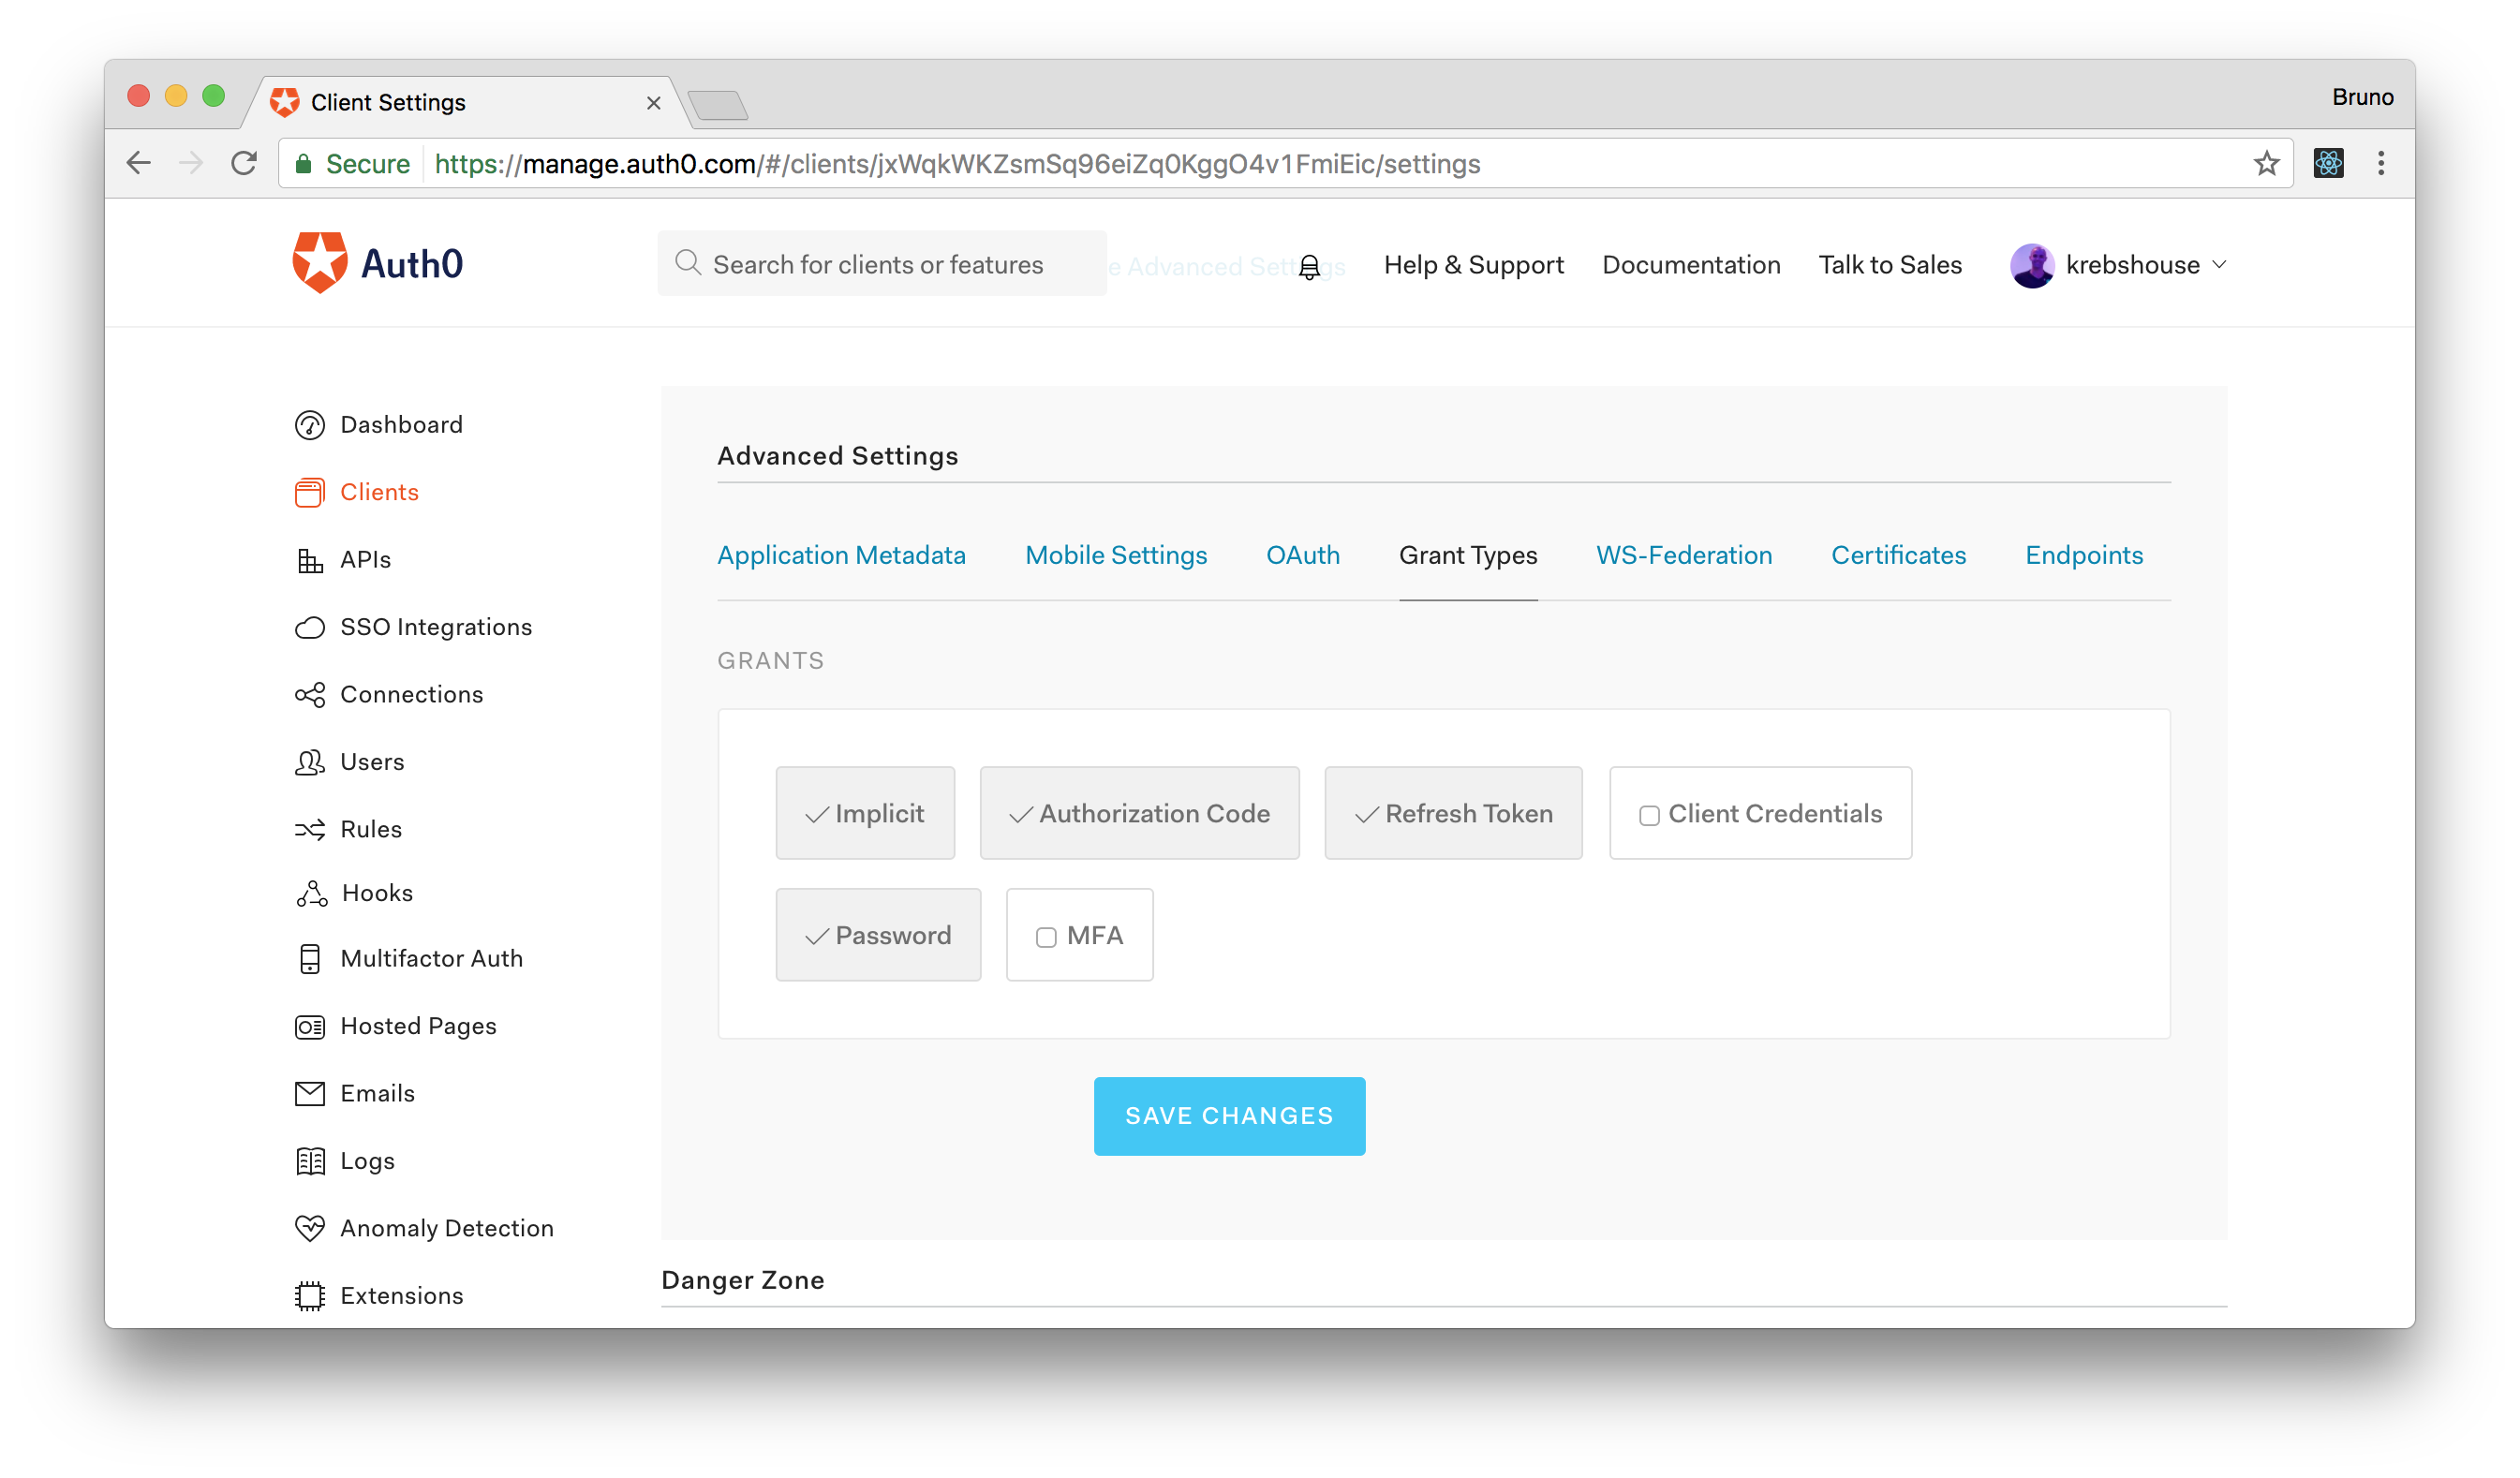 Enabling password grant on an Auth0 Client